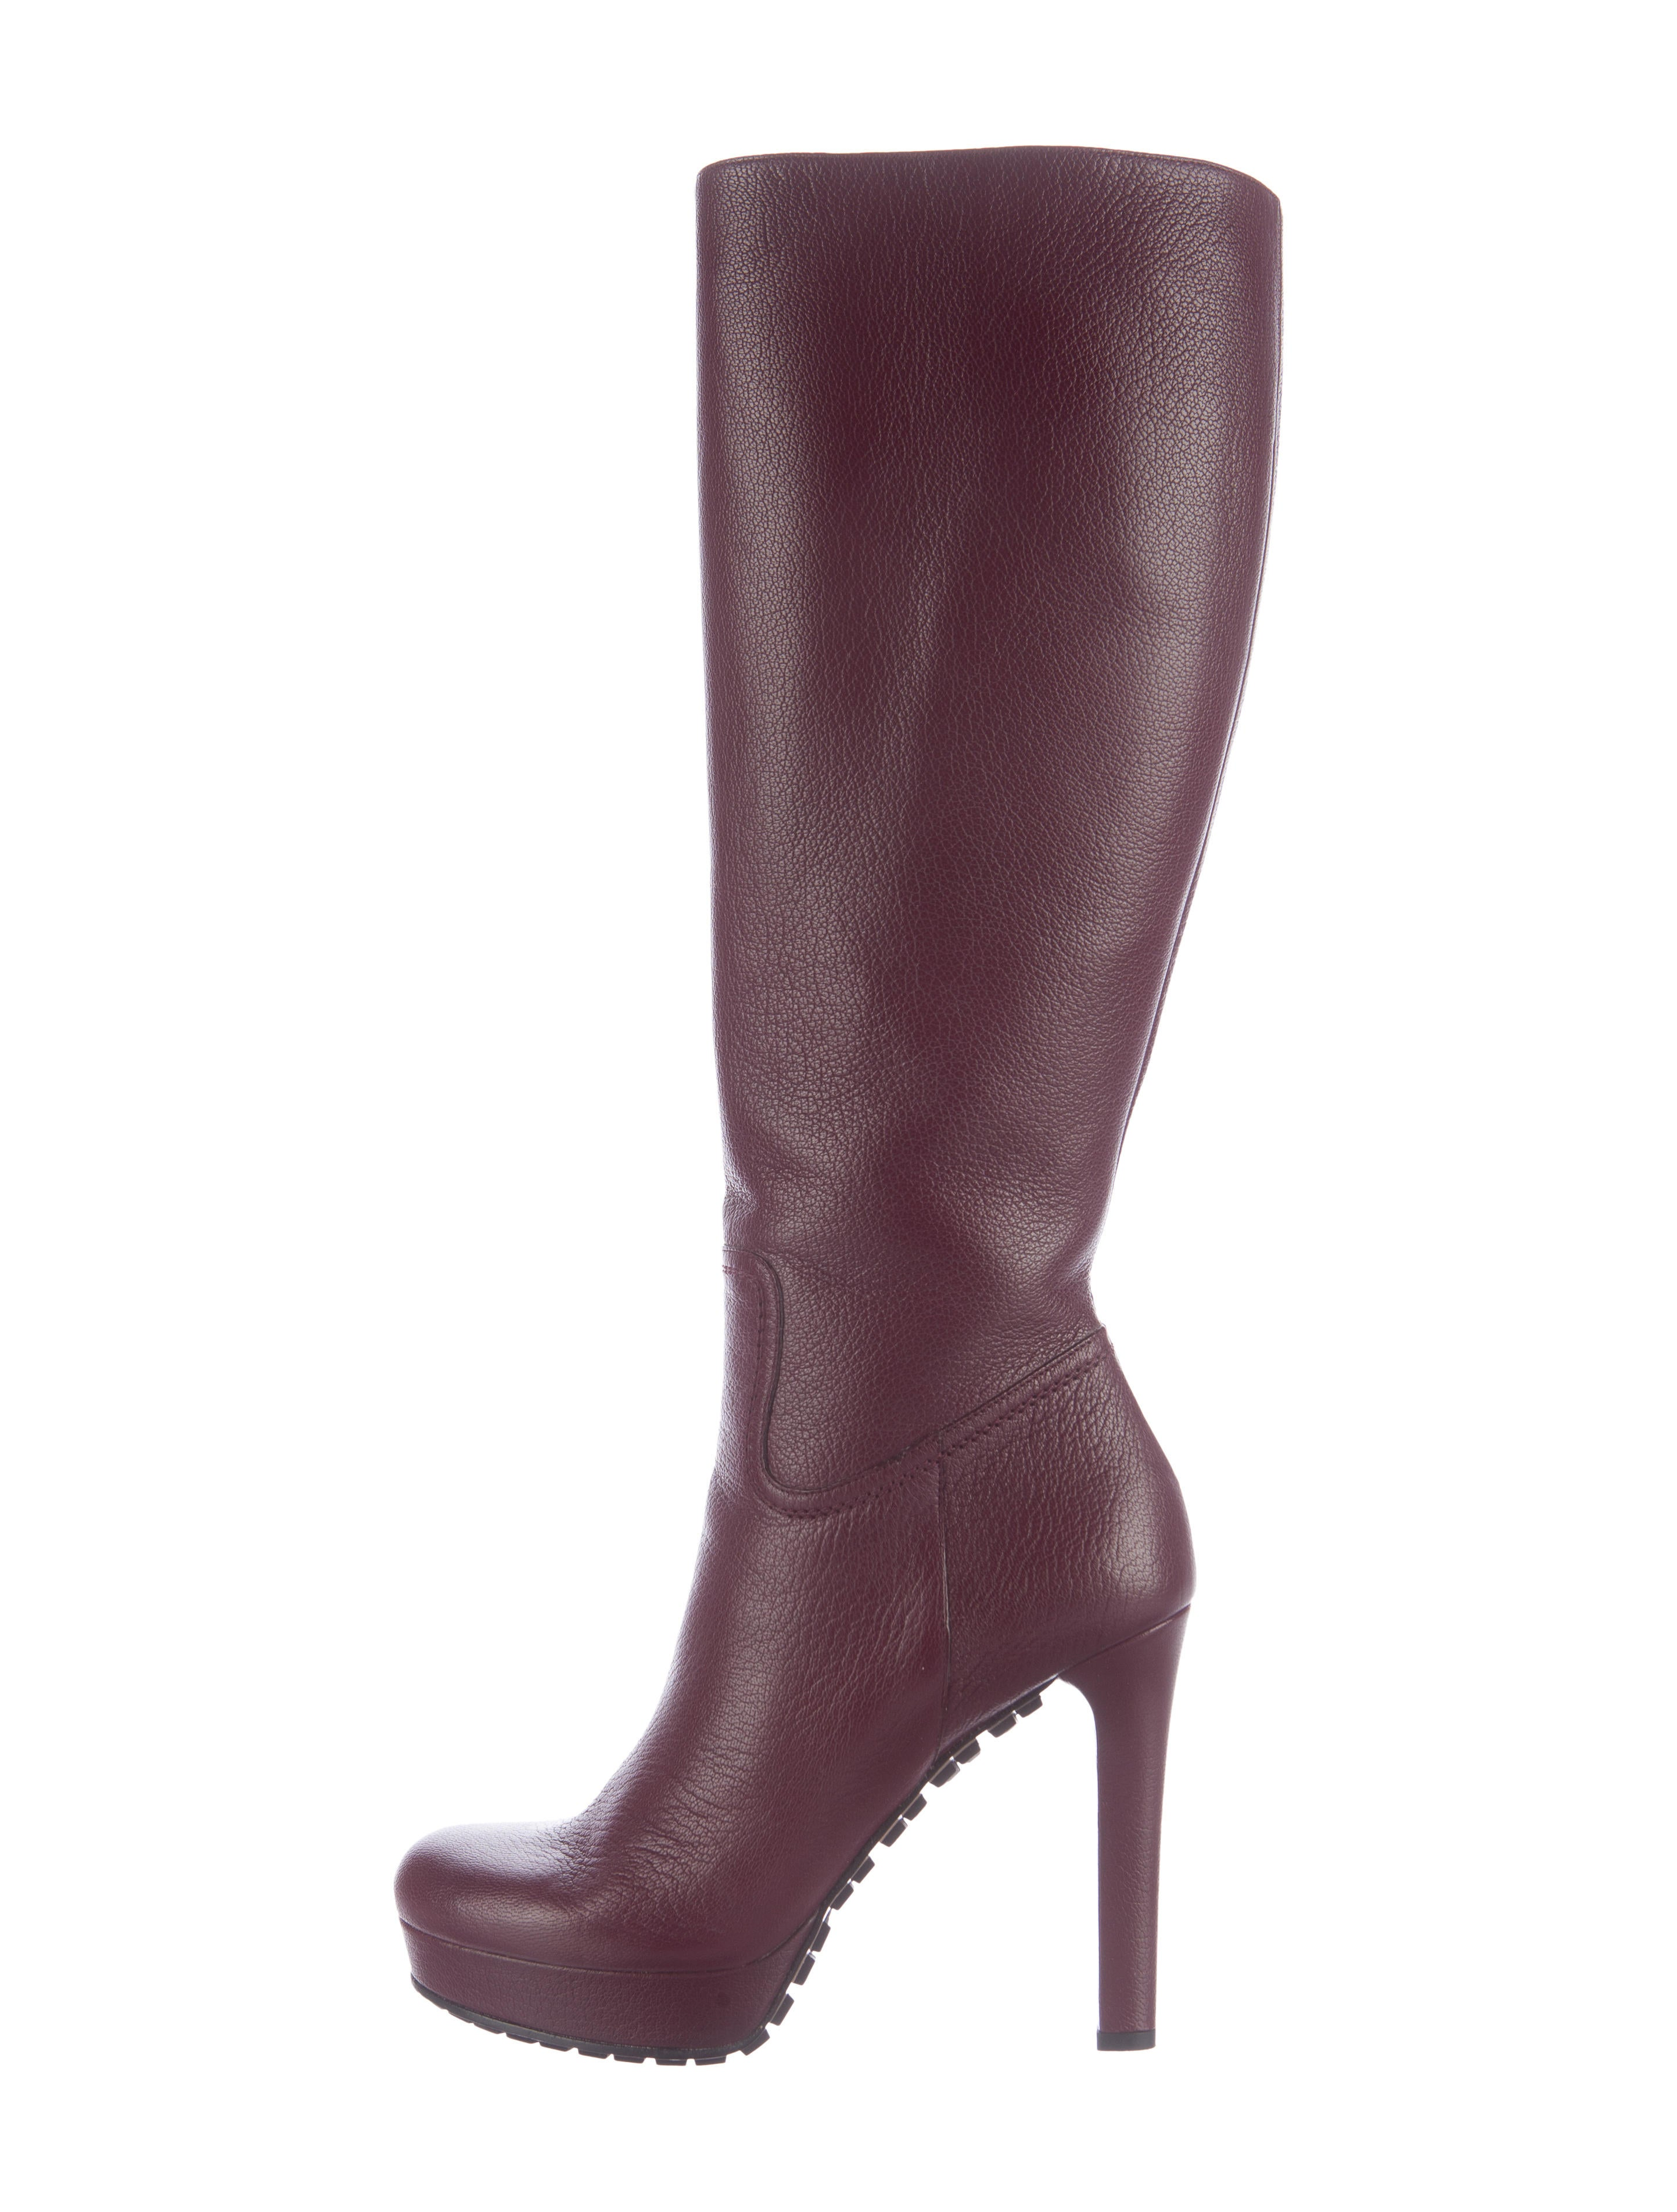 Women's Round Toe High Heel Platform Mid-Calf Knee High Boots Shoes Size 5 TOP MODA. $ Buy It Now +$ shipping. Free Returns. Summit Erie Women's Shoes Black Leather Knee High Platform Boots Size EU 39 NEW! See more like this. CONCORD DEMONIA COMBAT BIKER GOTH MULTI STRAP PLATFORM WEDGE KNEE HIGH BOOT .